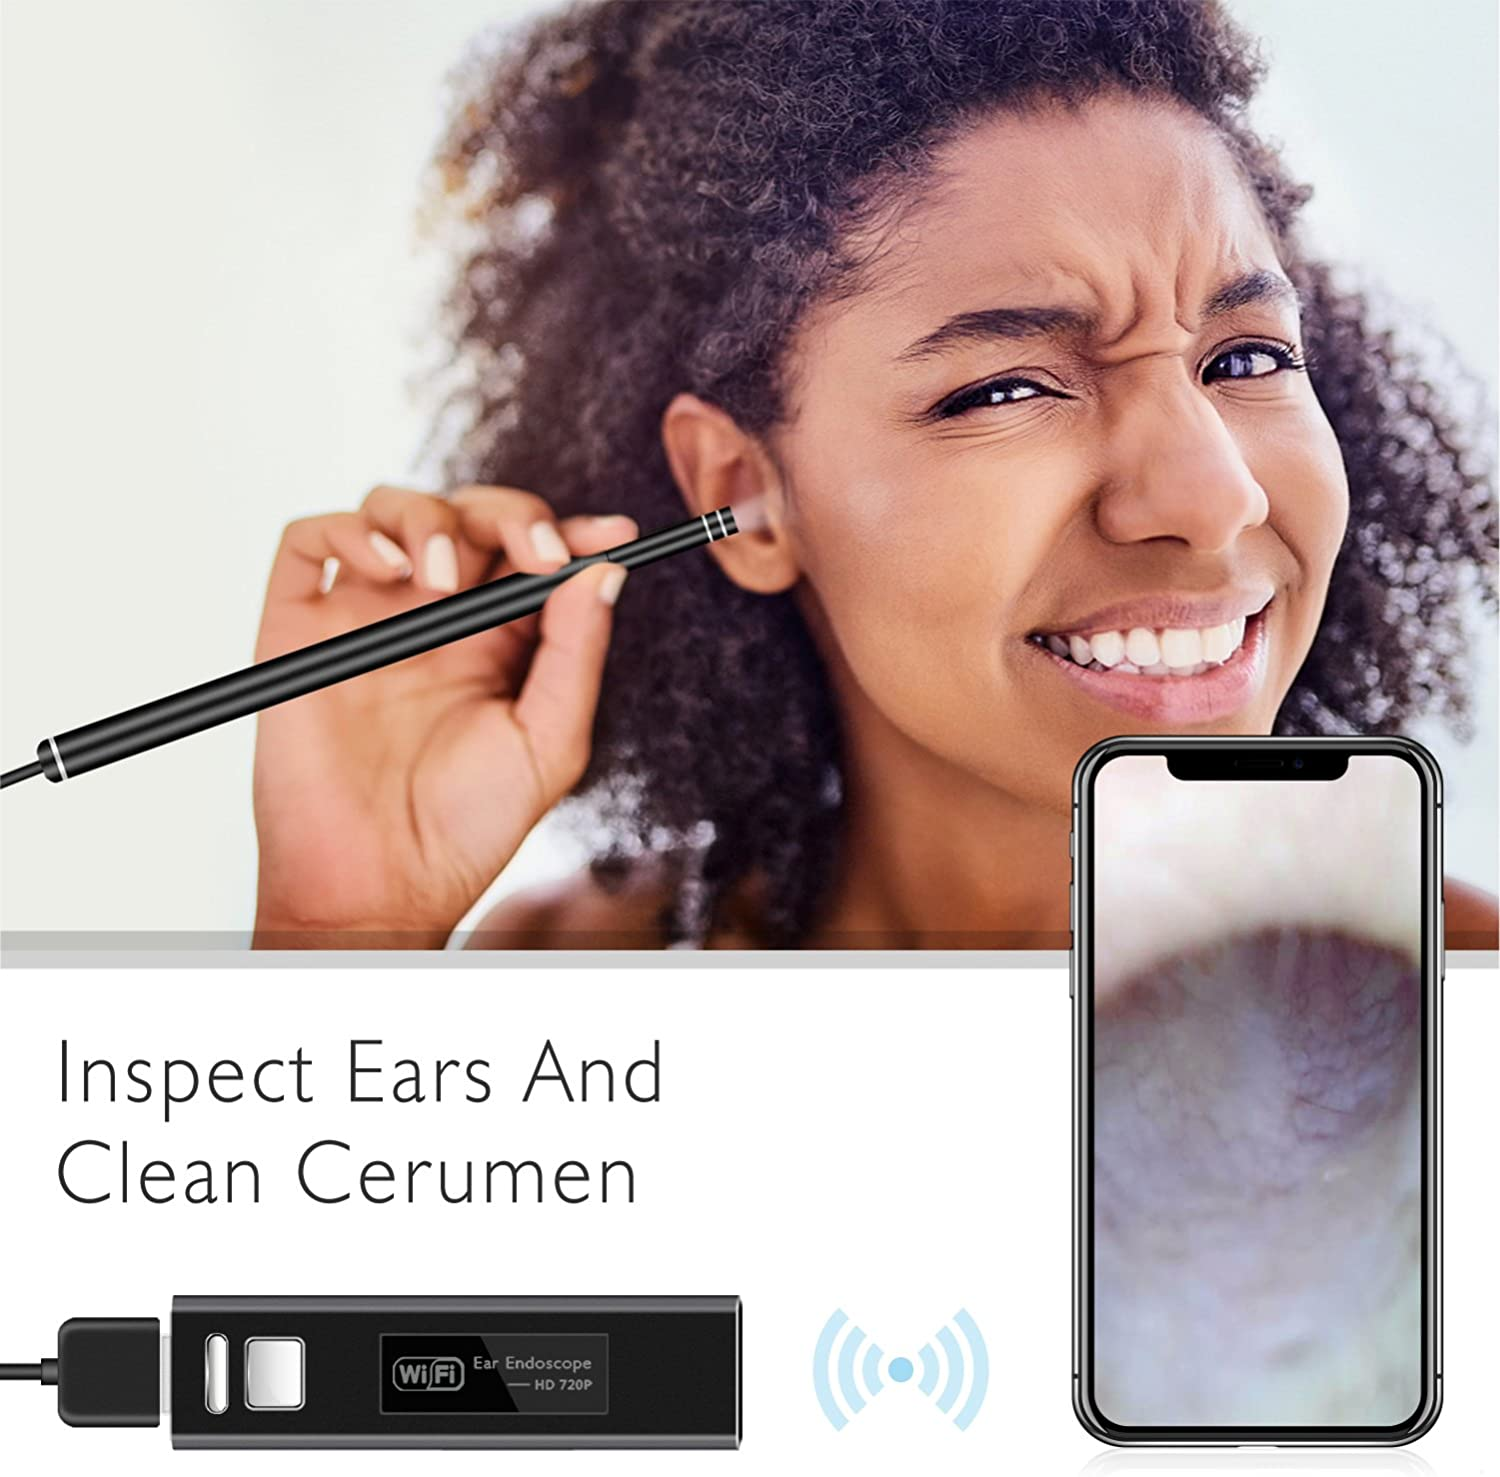 Ear Endoscope WiFi, HEYSTOP Wireless Digital Ear Cleaning Waterproof Otoscope Inspection Camera Portable HD Borescope with Earpick for IOS and Android Smartphones Windows MAC